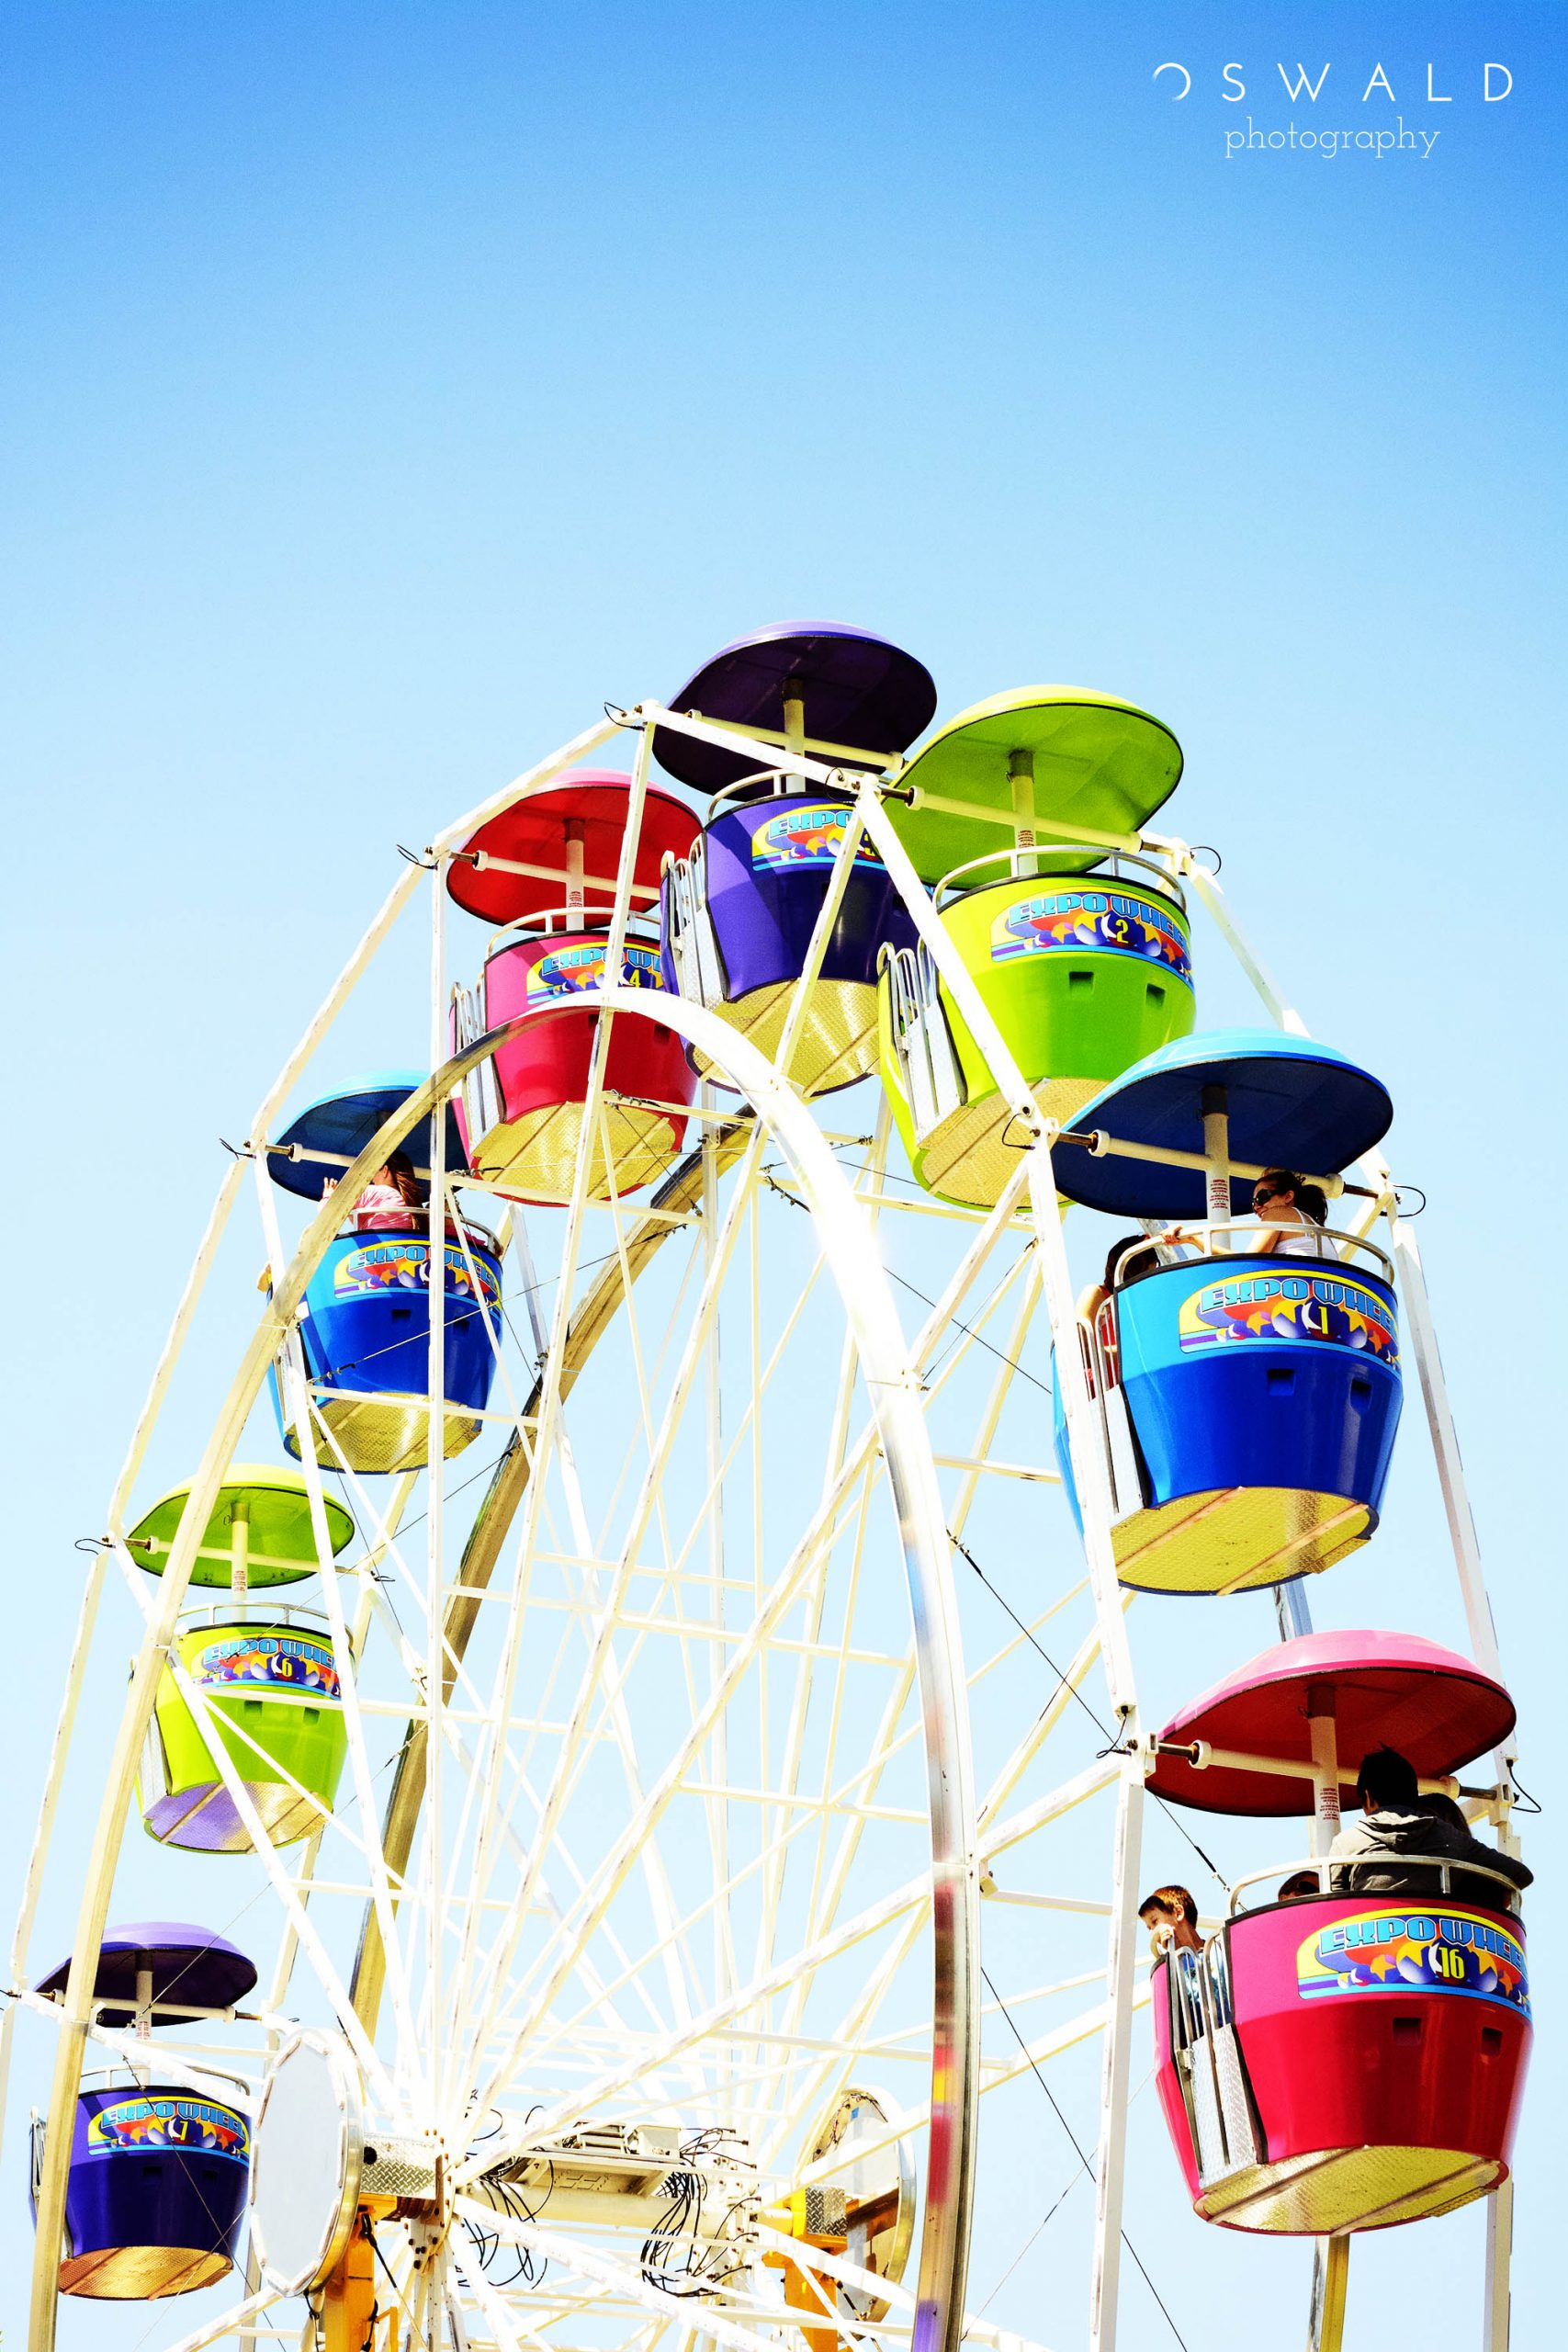 A hard-lit photograph of a ferris wheel in motion at the Elk Grove Western Festival on a spring afternoon.